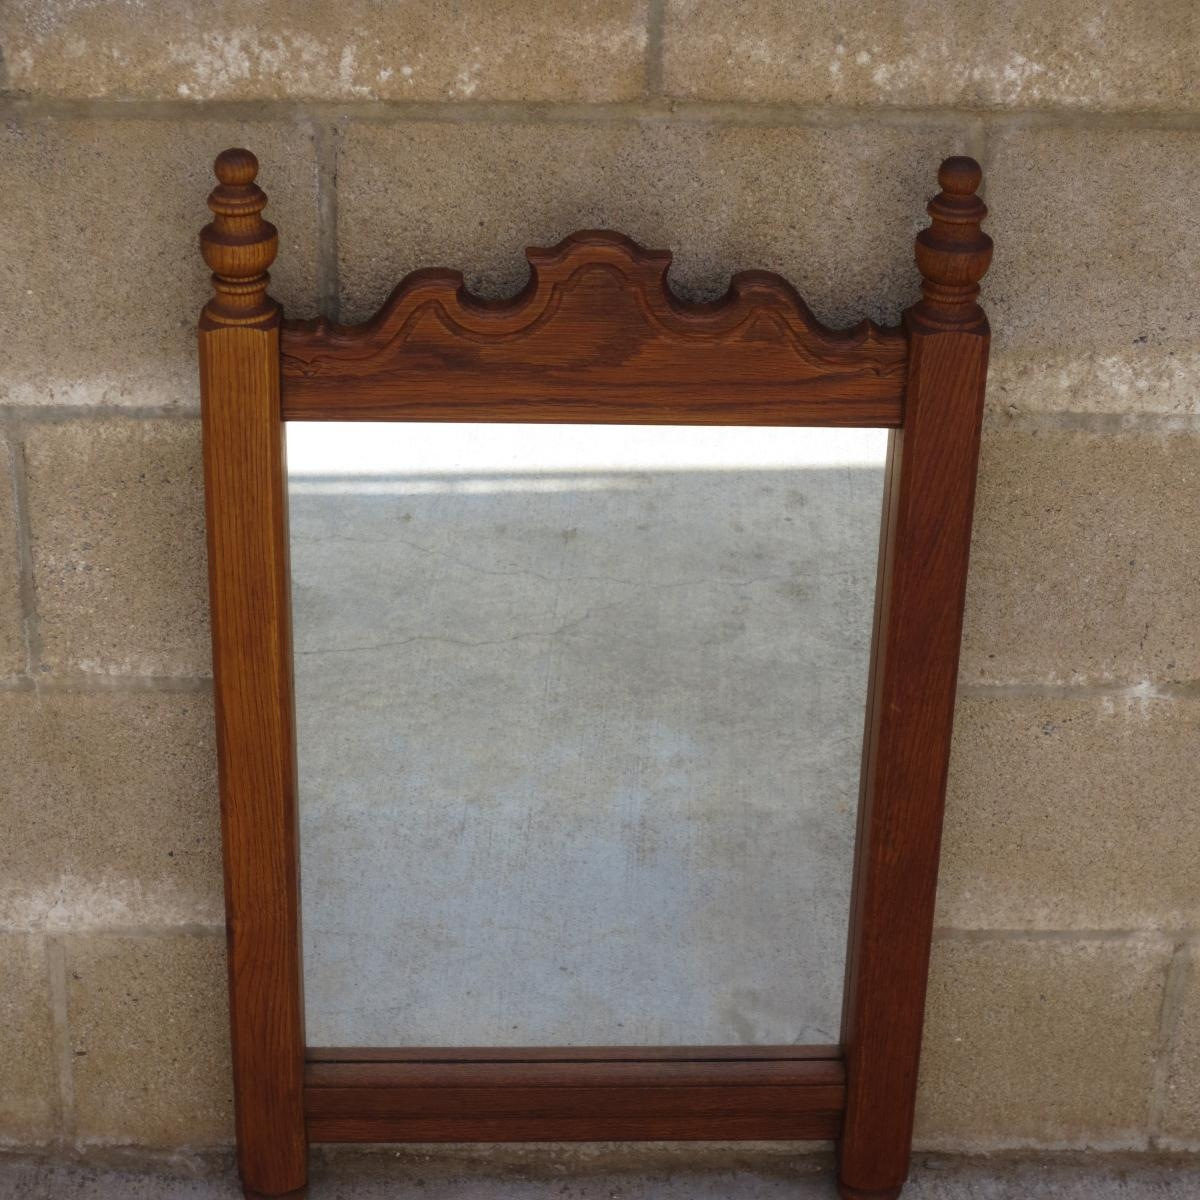 Antique Mirrors, Vintage Mirrors, Antique Wall Mirrors, And French With Regard To Antique Wall Mirror (View 6 of 20)